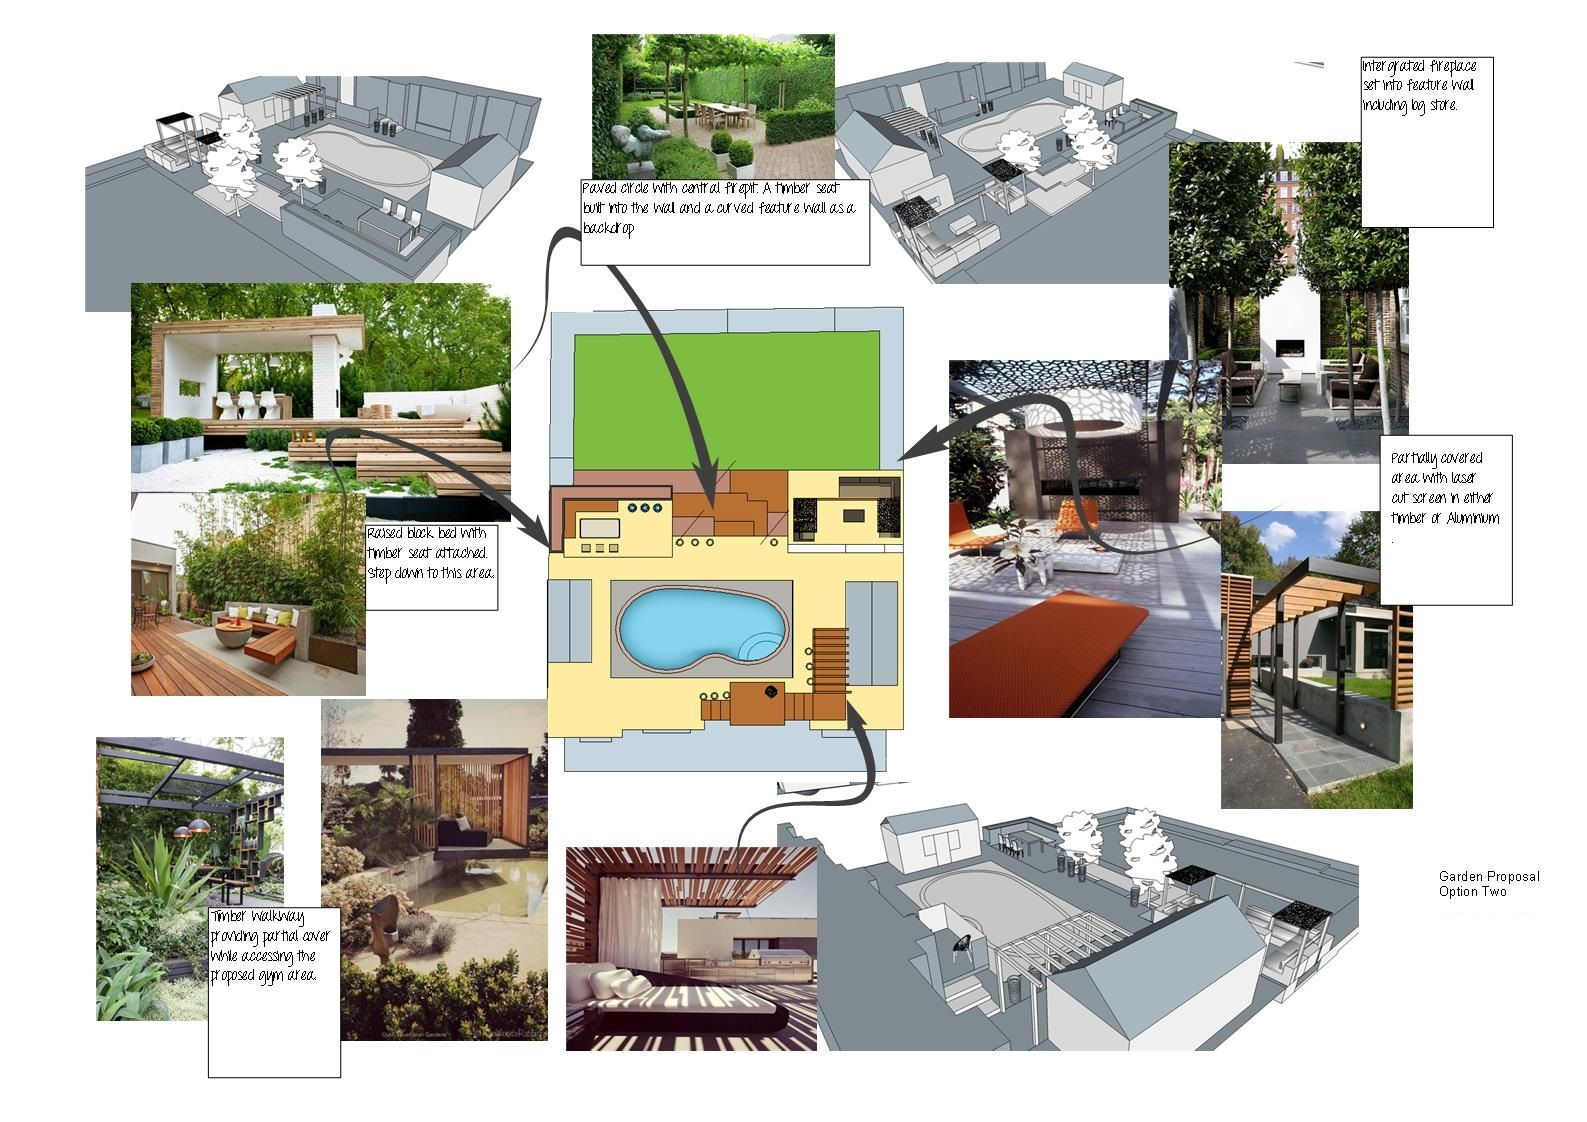 Large Rectangular Lawn Suitable For Games As Part Of A Detailed Garden Design Including A Pool Covered Walkw Garden Design Plans Garden Design Covered Walkway